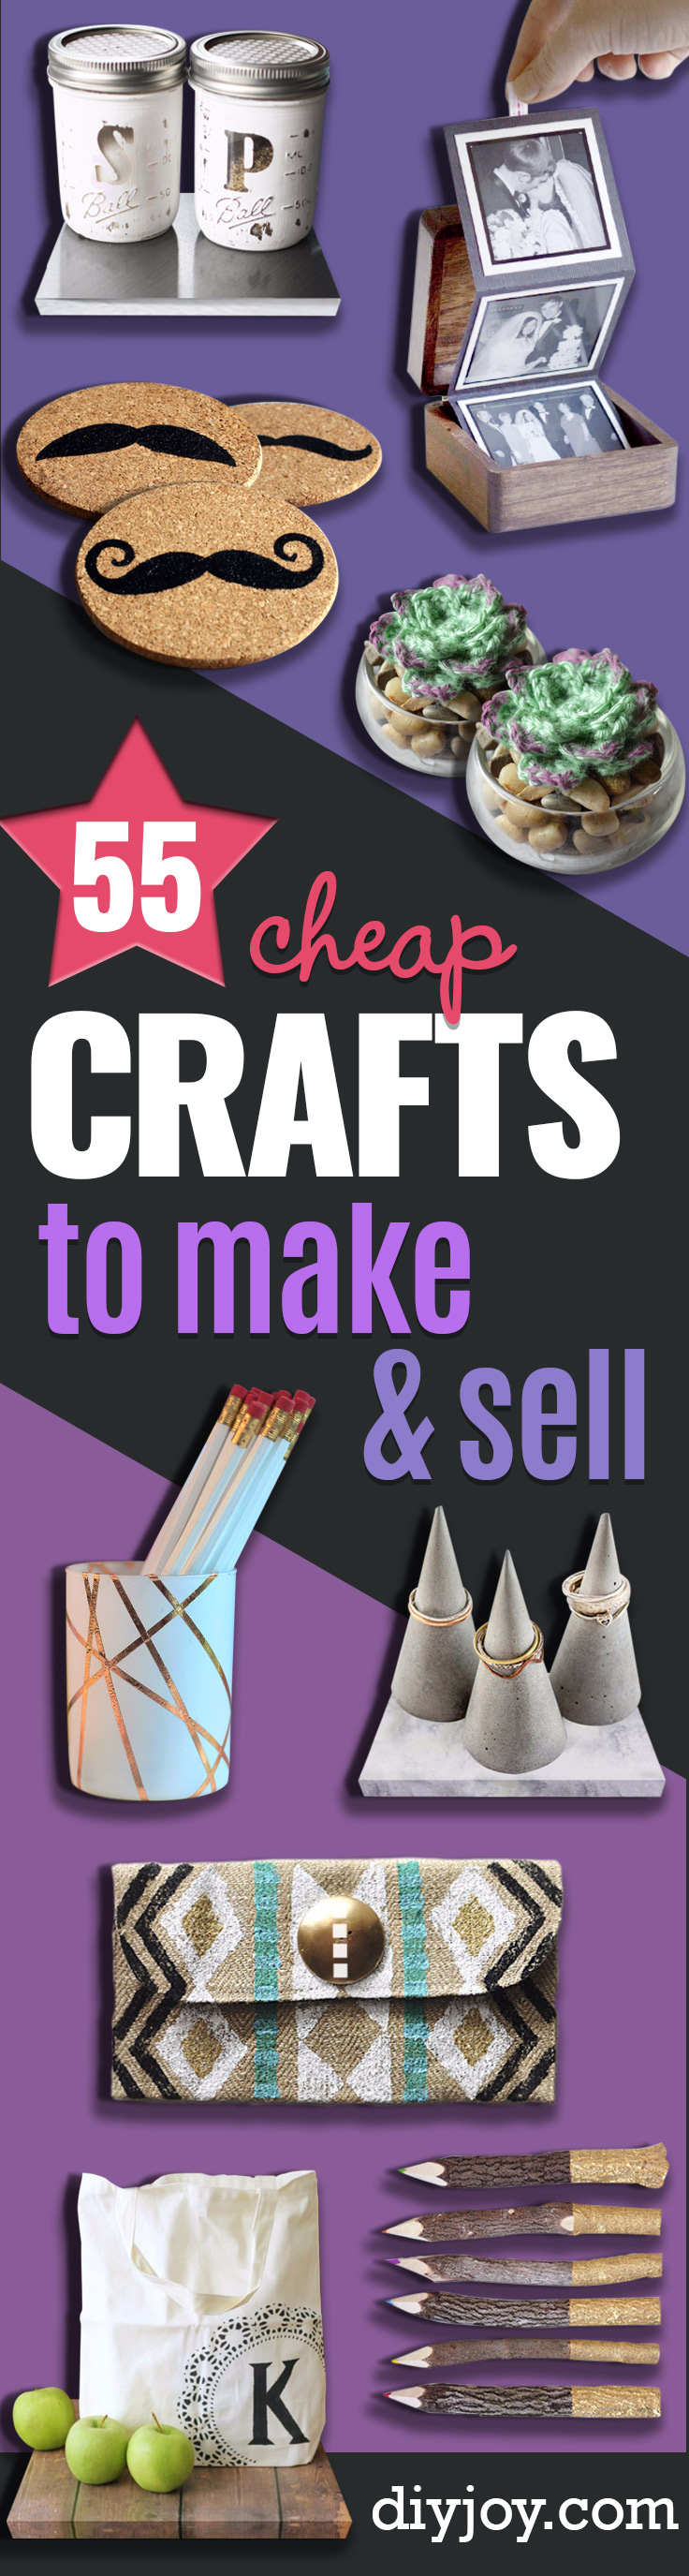 Cheap Crafts To Make and Sell - Inexpensive Ideas for DIY Crafts To Sell On Etsy - DIY Ideas to Sell and Make Money